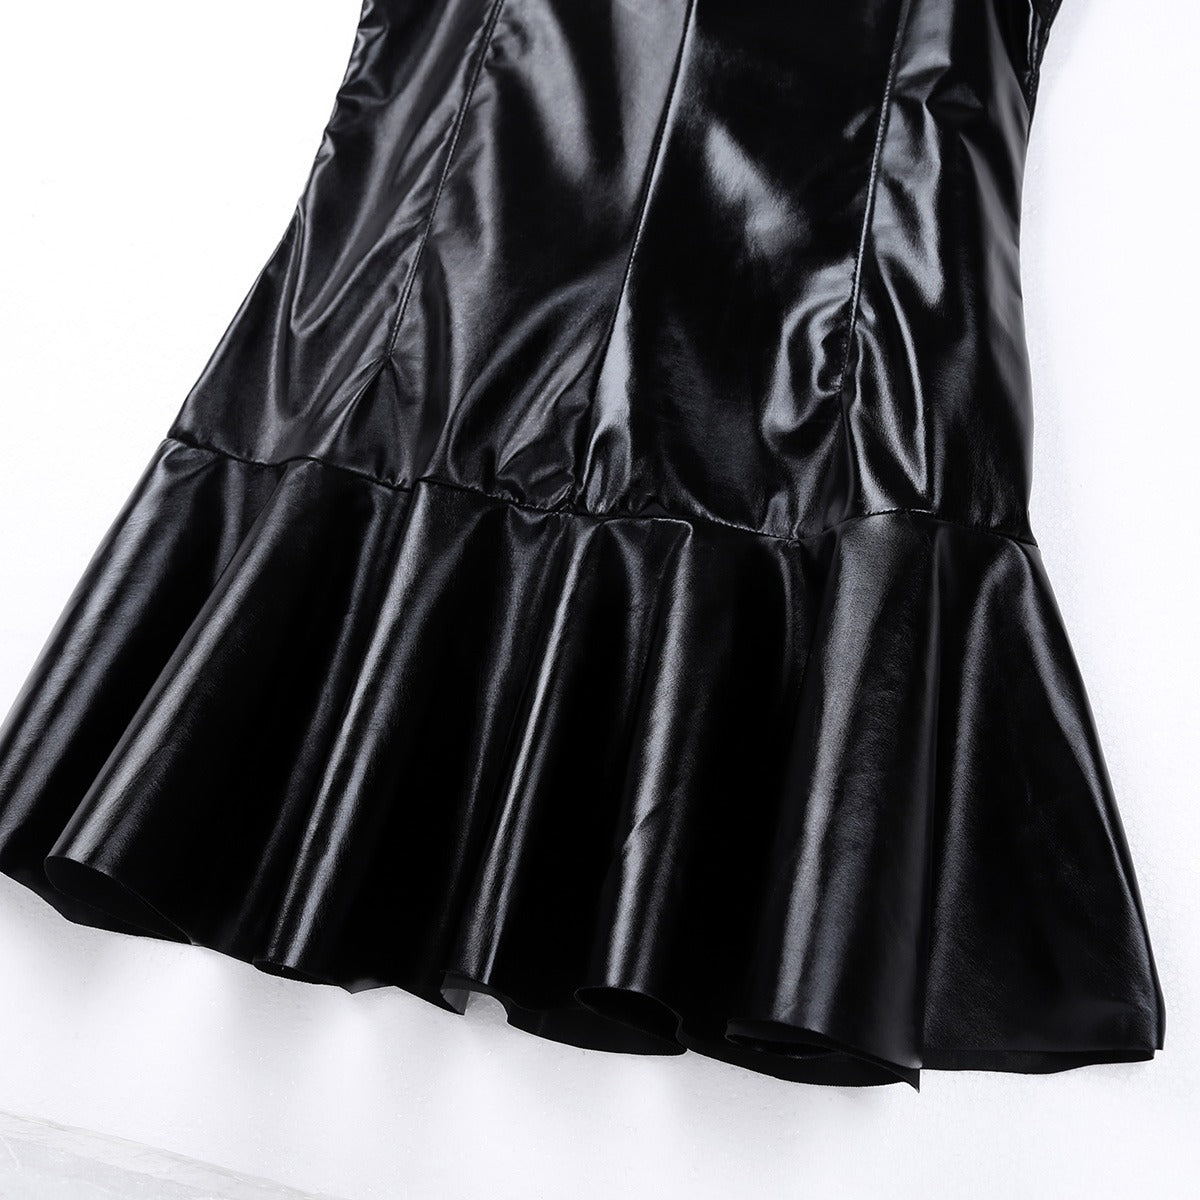 Womens Cocktail Dresses  in Black / Wetlook Babydoll PU Leather High Collar Bottom Flare Mini Dress - HARD'N'HEAVY